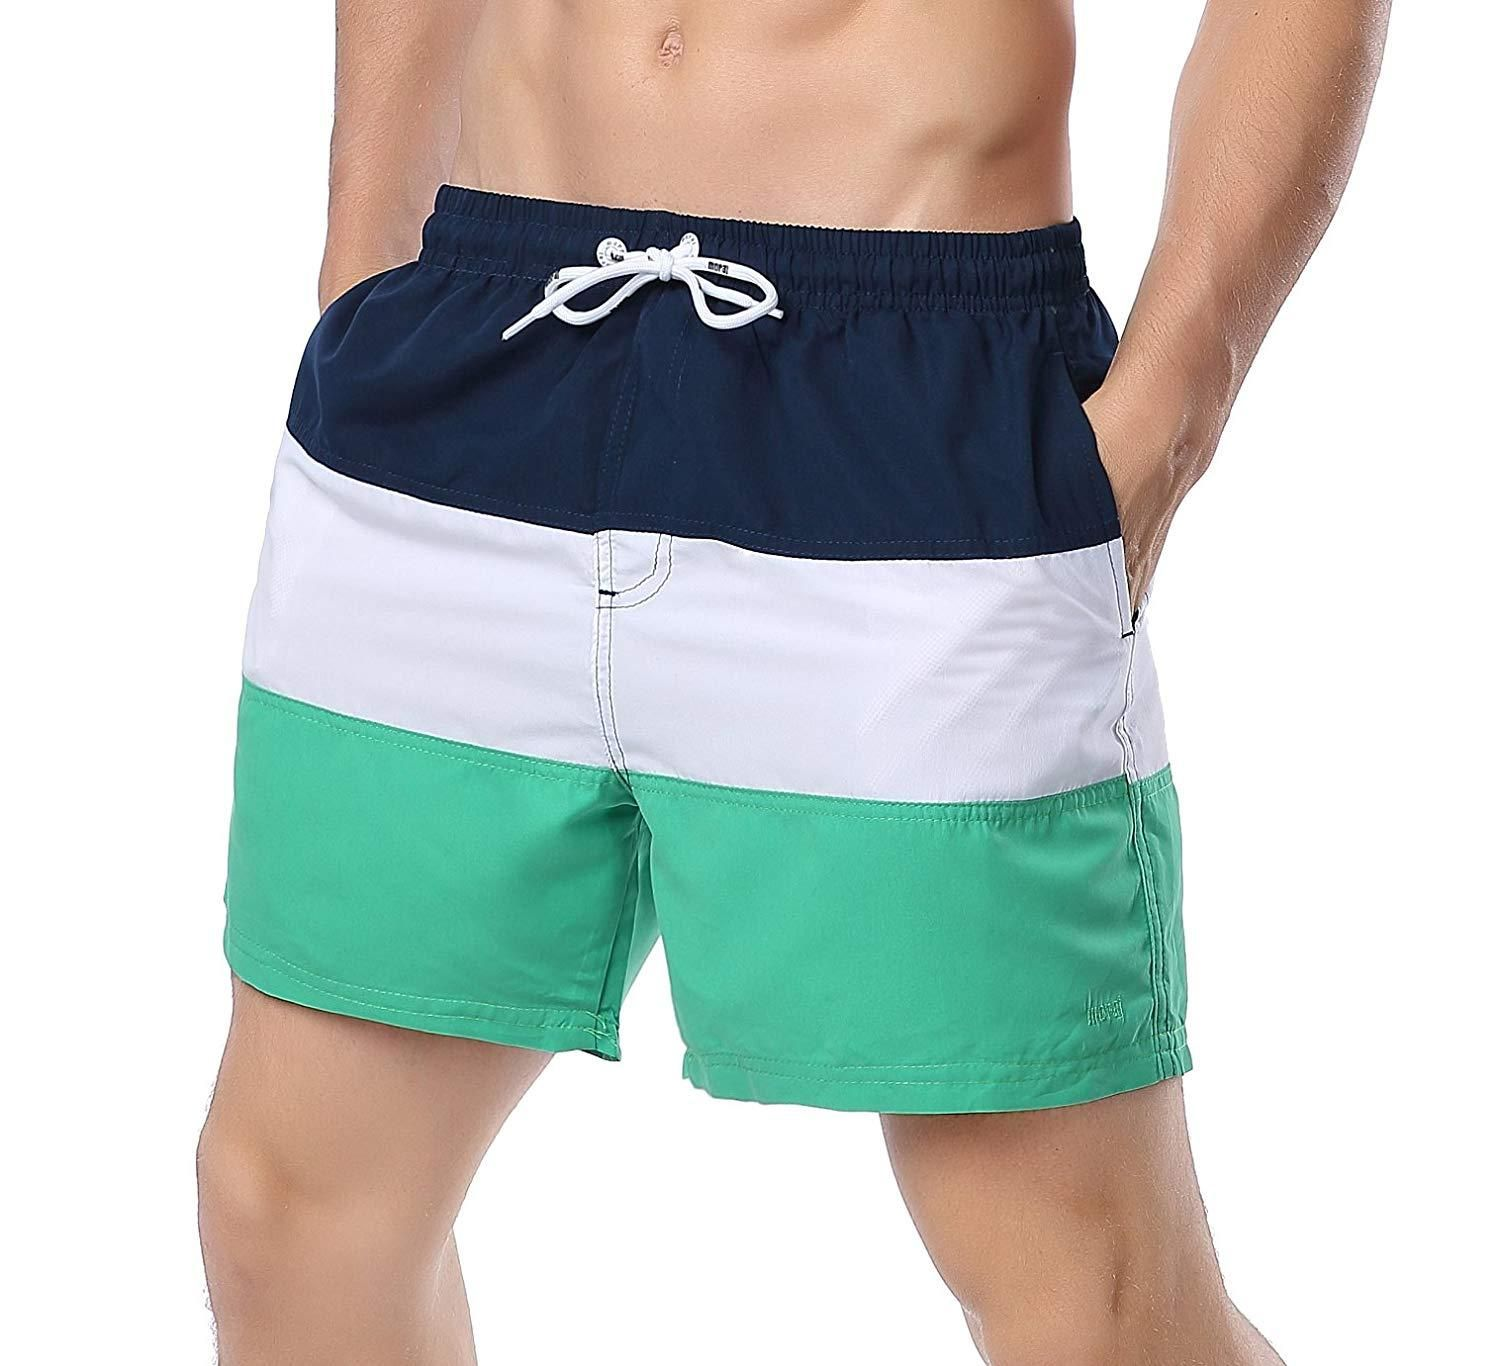 YuKaiChen Mens Swim Trunks Quick Dry Bathing Suits